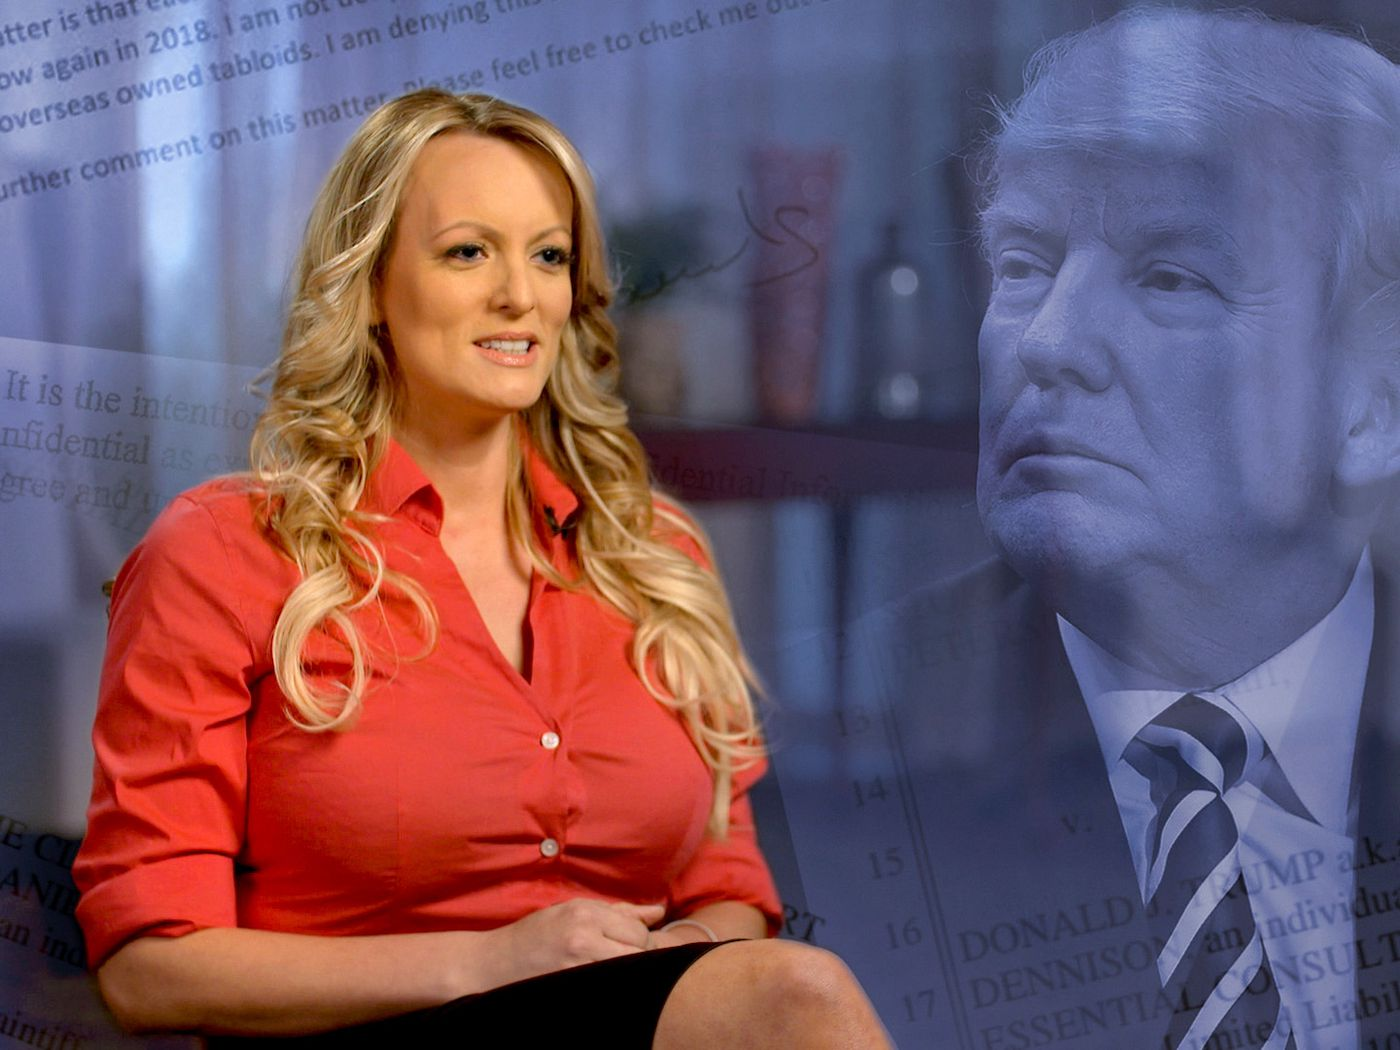 Stormy Daniels: Donald Trump's porn actress lawsuit scandal